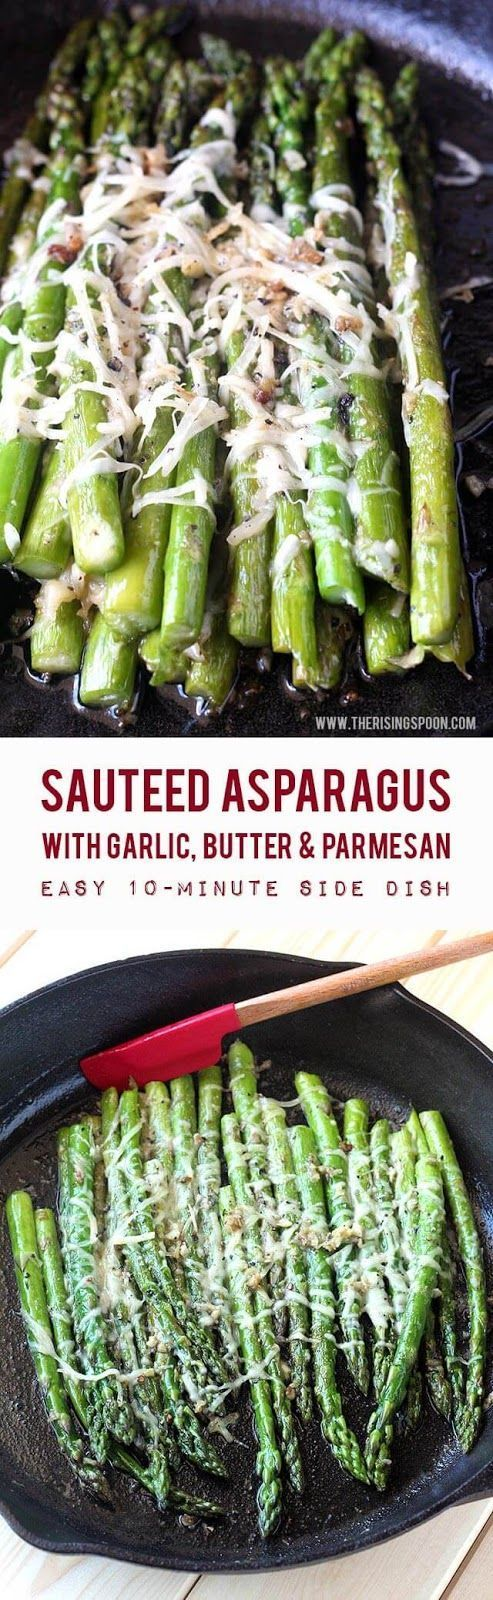 A quick & easy sauteed asparagus recipe with butter, garlic & shredded Parmesan cheese. In about 10 minutes or less, you'll have a simple side dish made with real food ingredients to accompany any mea (Garlic Butter Asparagus)